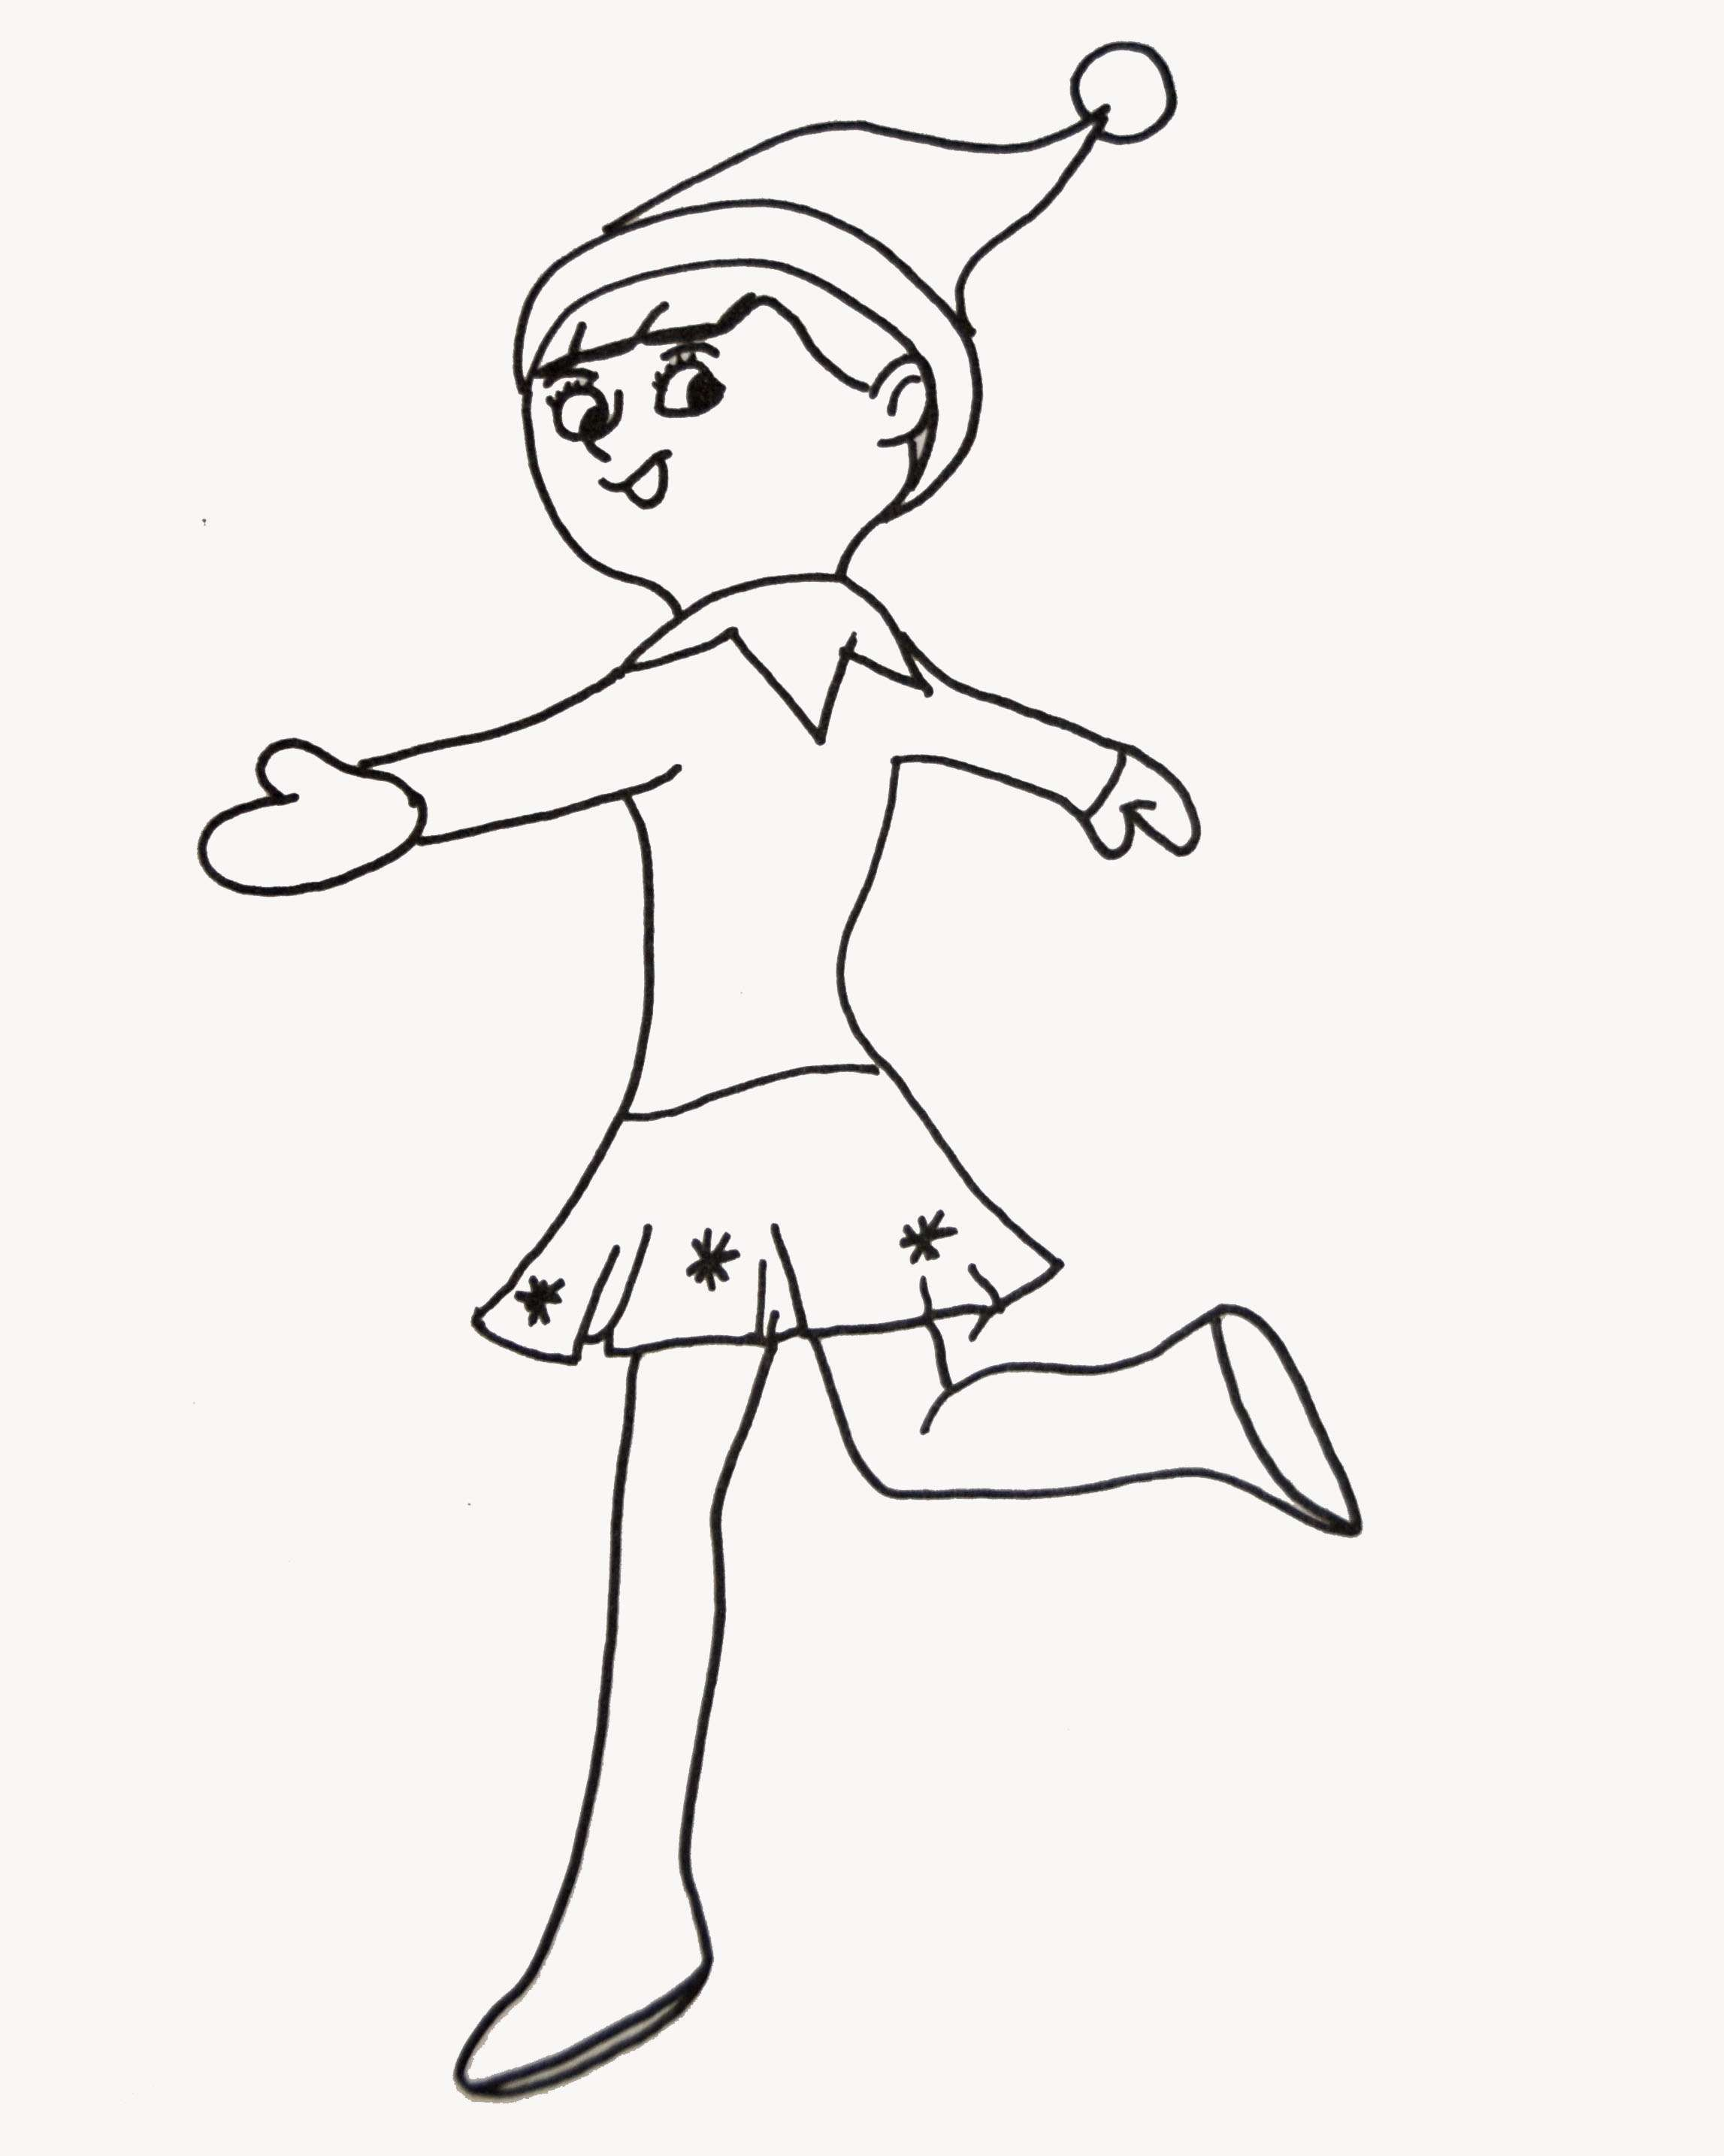 Grab Your New Coloring Pages Elf Free Https Gethighit Com New Coloring Pages Elf Christmas Coloring Pages Coloring Pages For Kids Coloring Pages For Girls